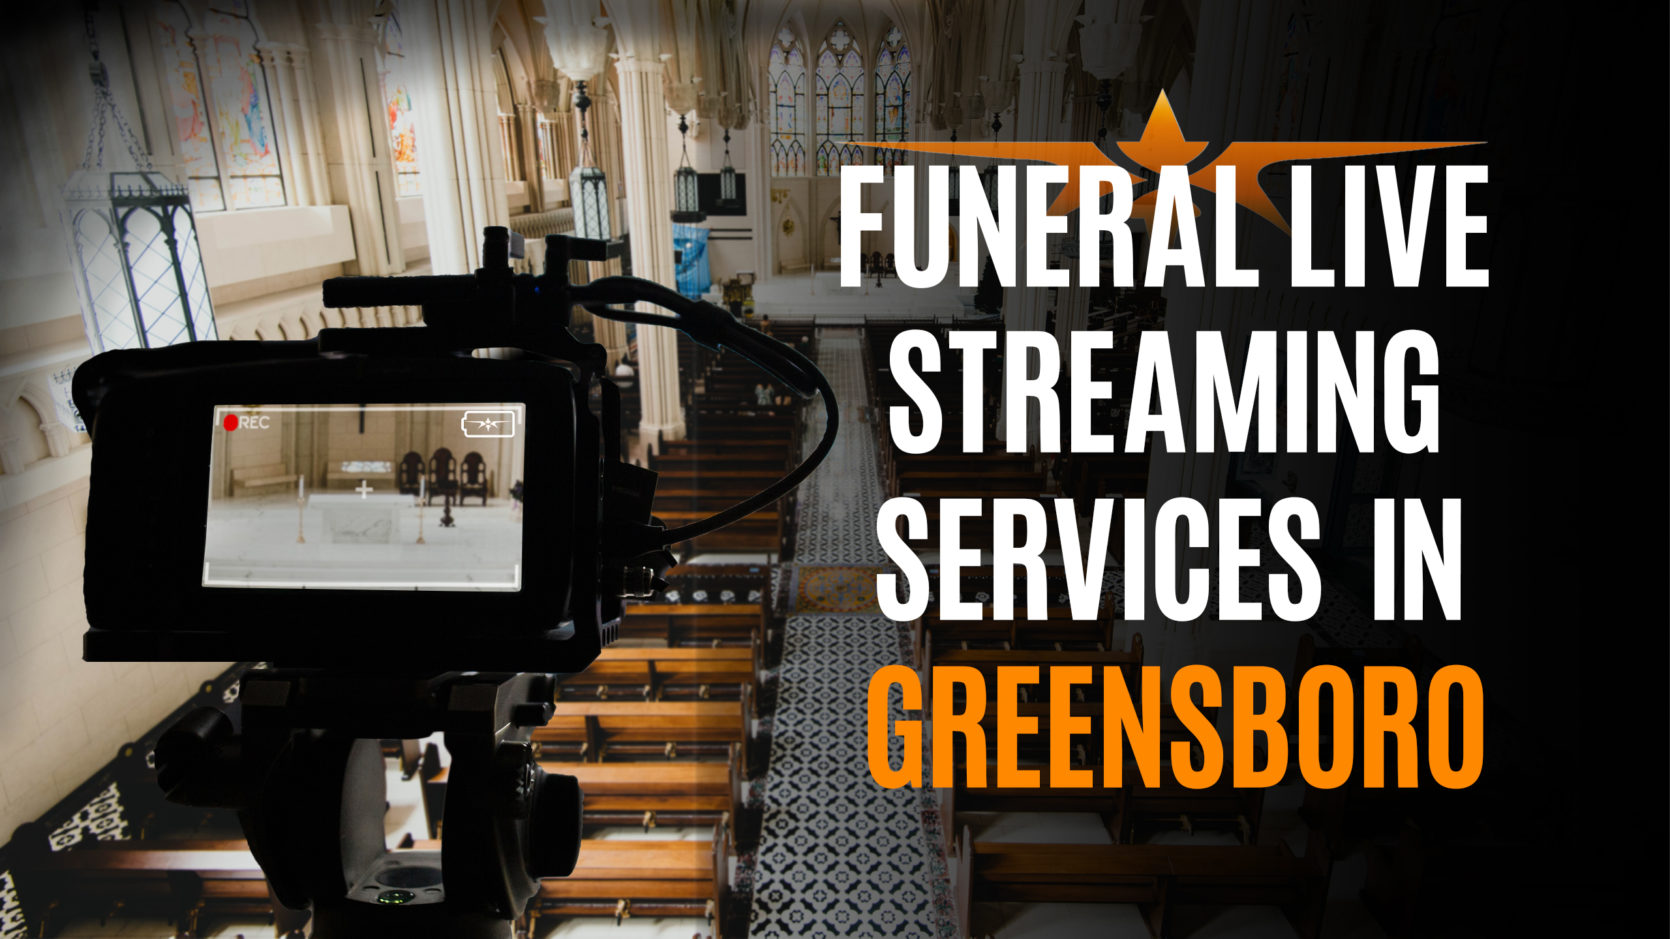 Funeral Live Streaming Services in Greensboro